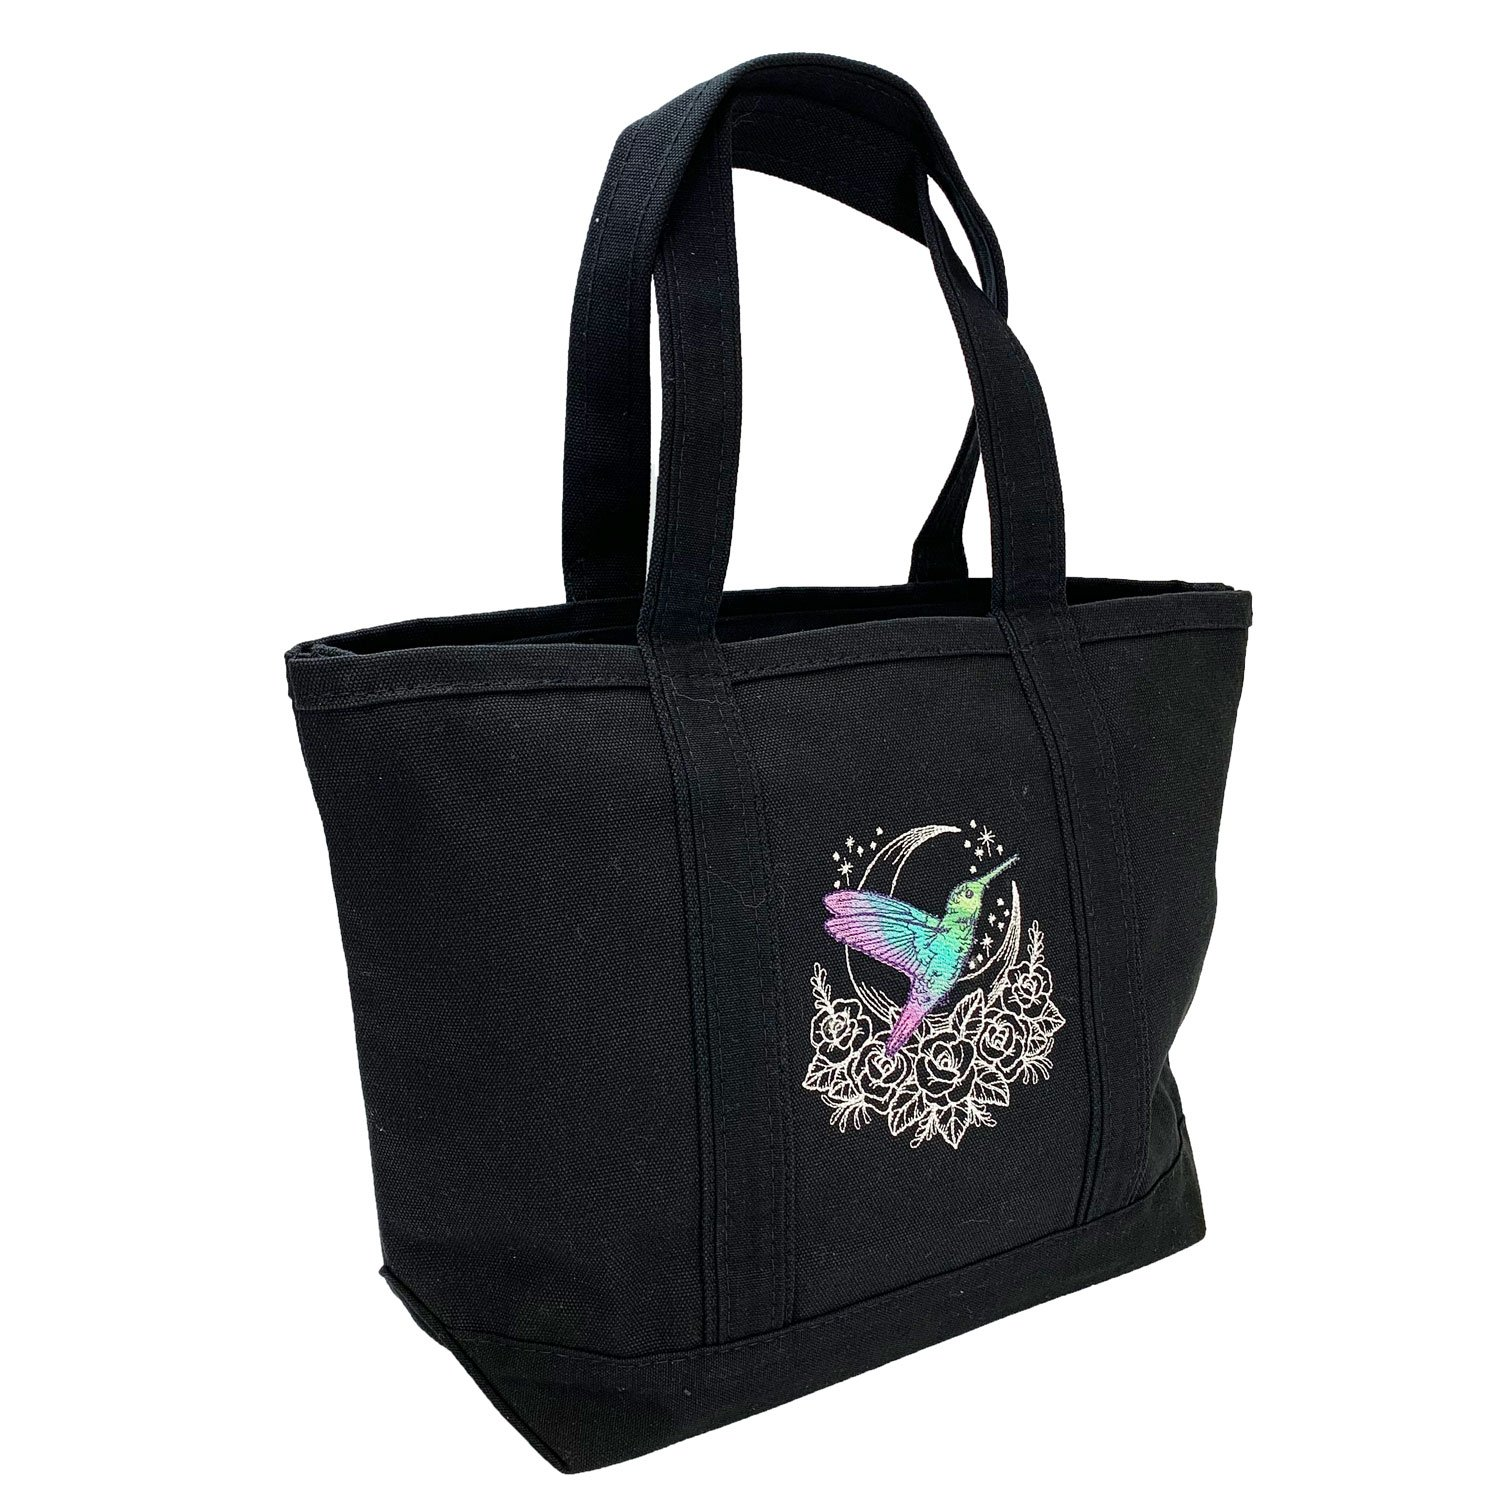 Embroidered Canvas Tote Hummingbird